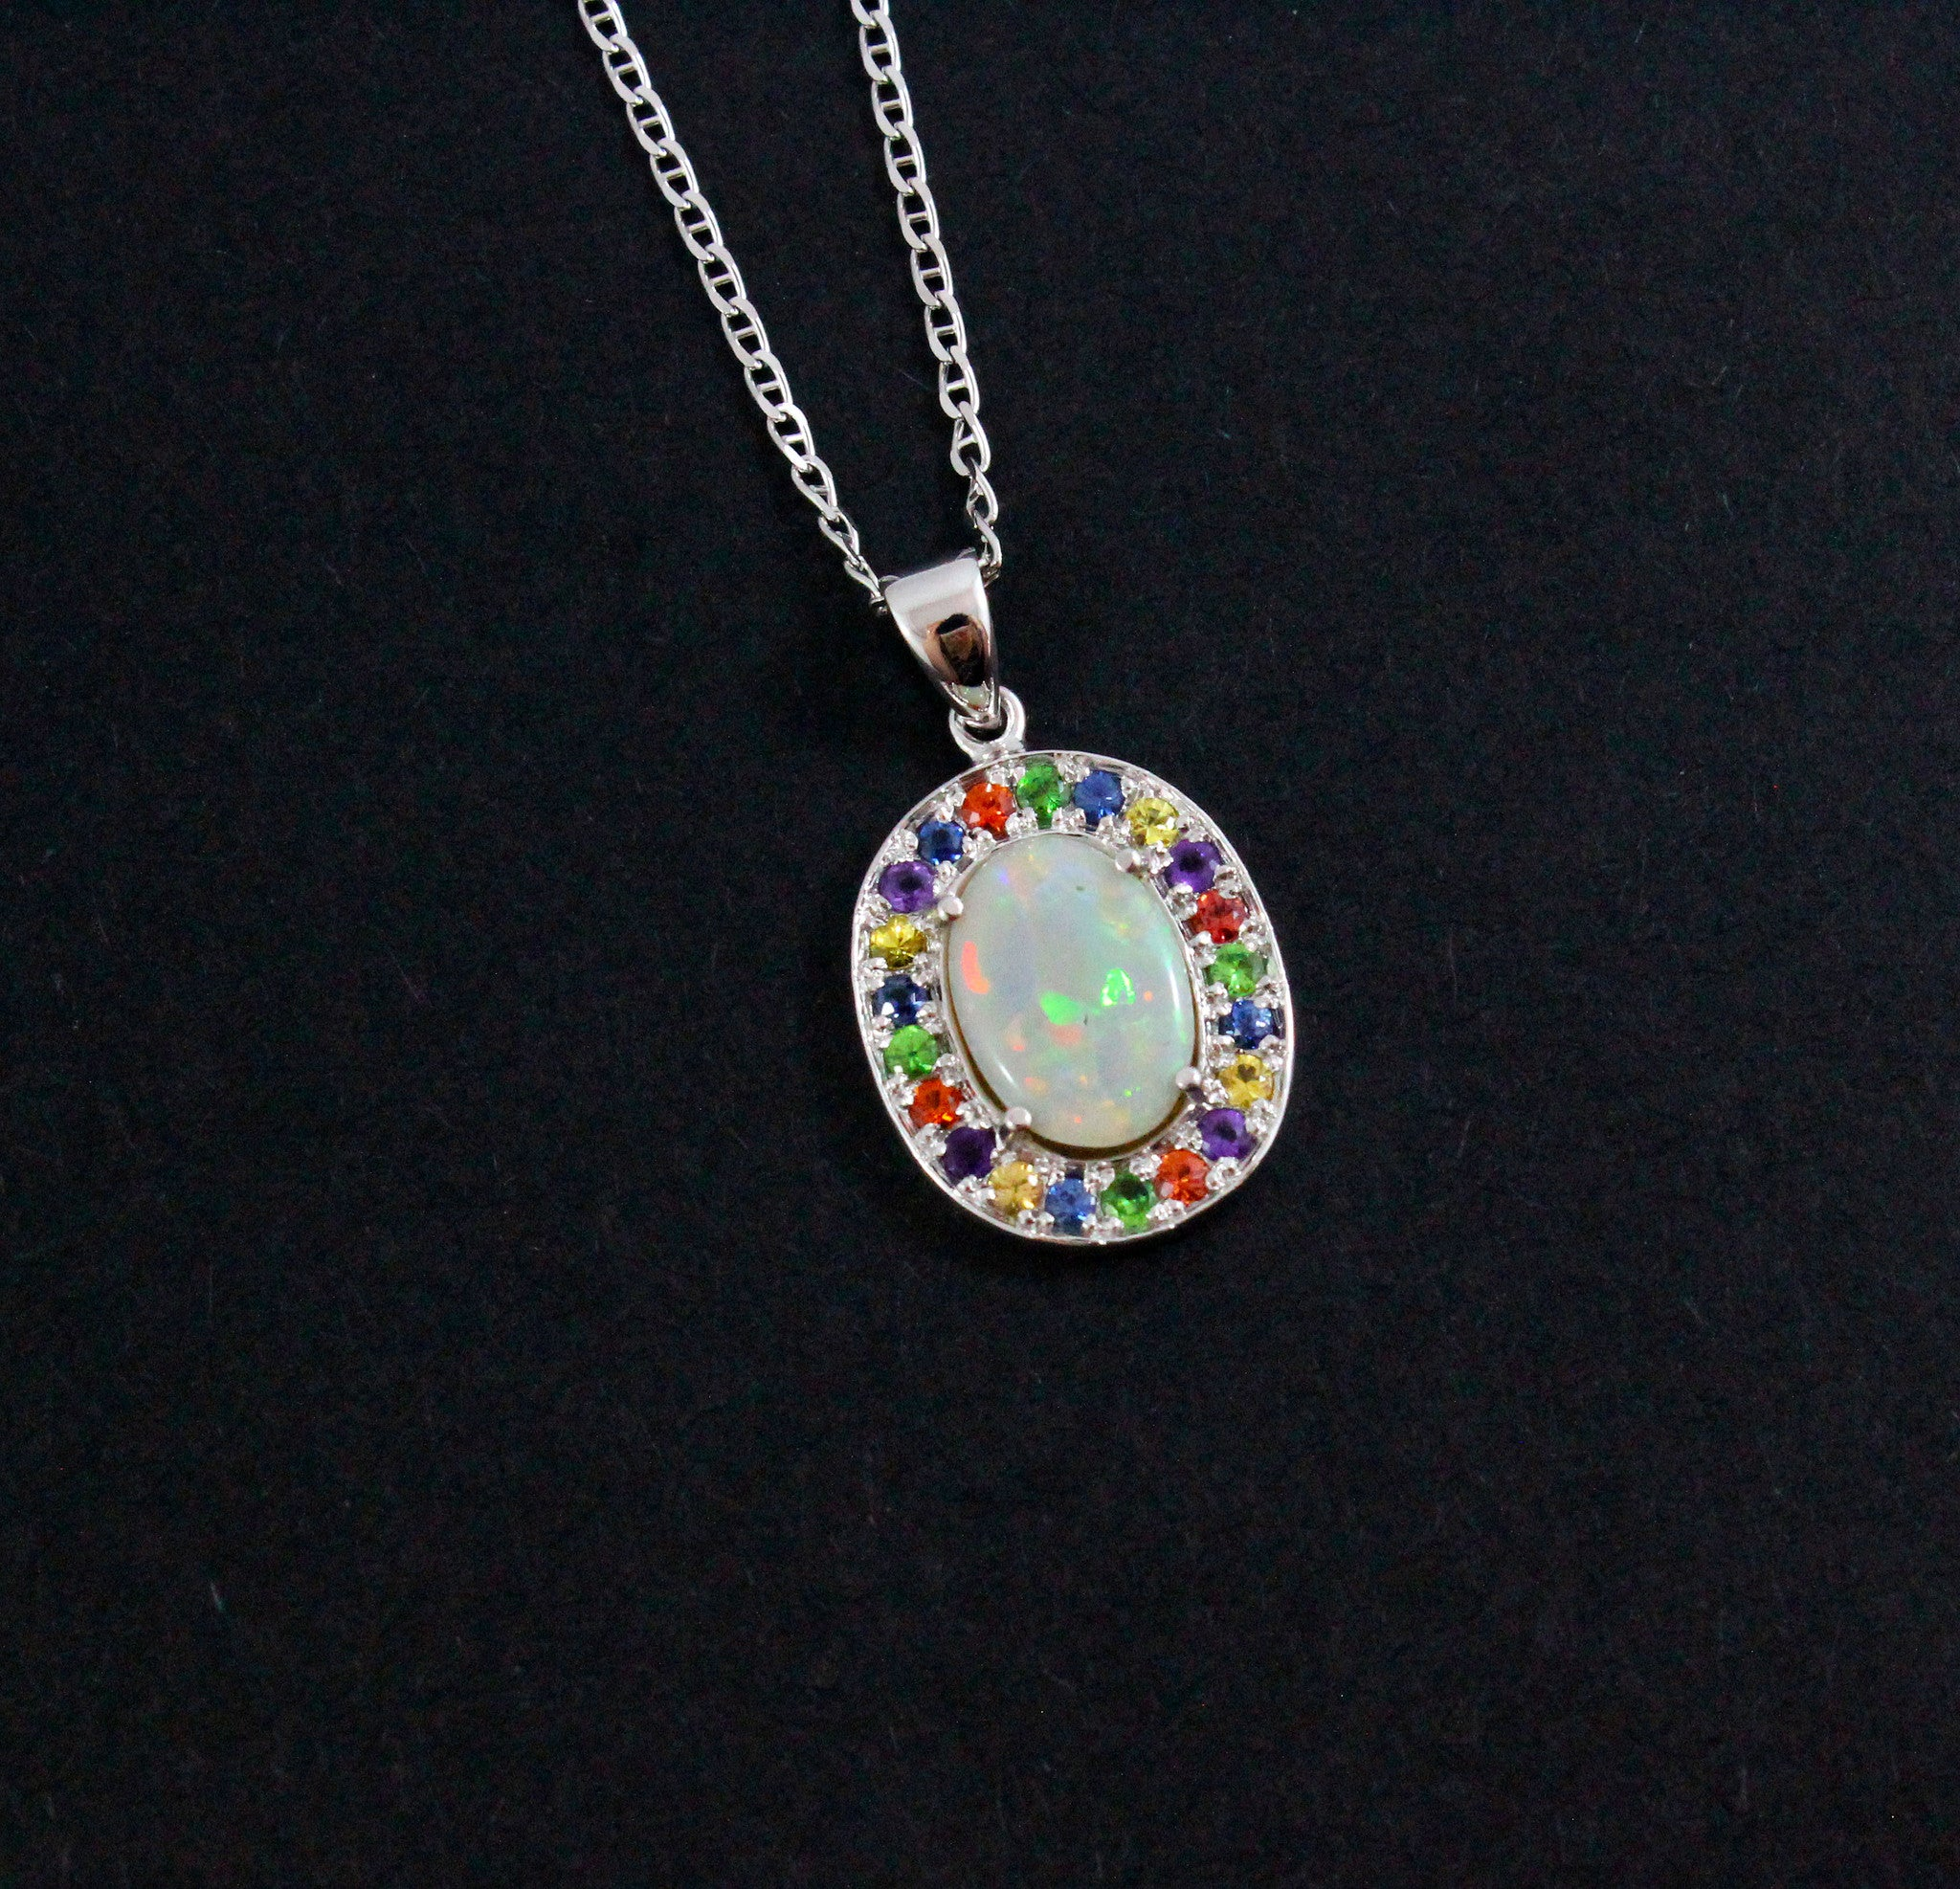 Australian opal fancy sapphires and amethyst halo white gold pendant necklace - Sarah Hughes - 5